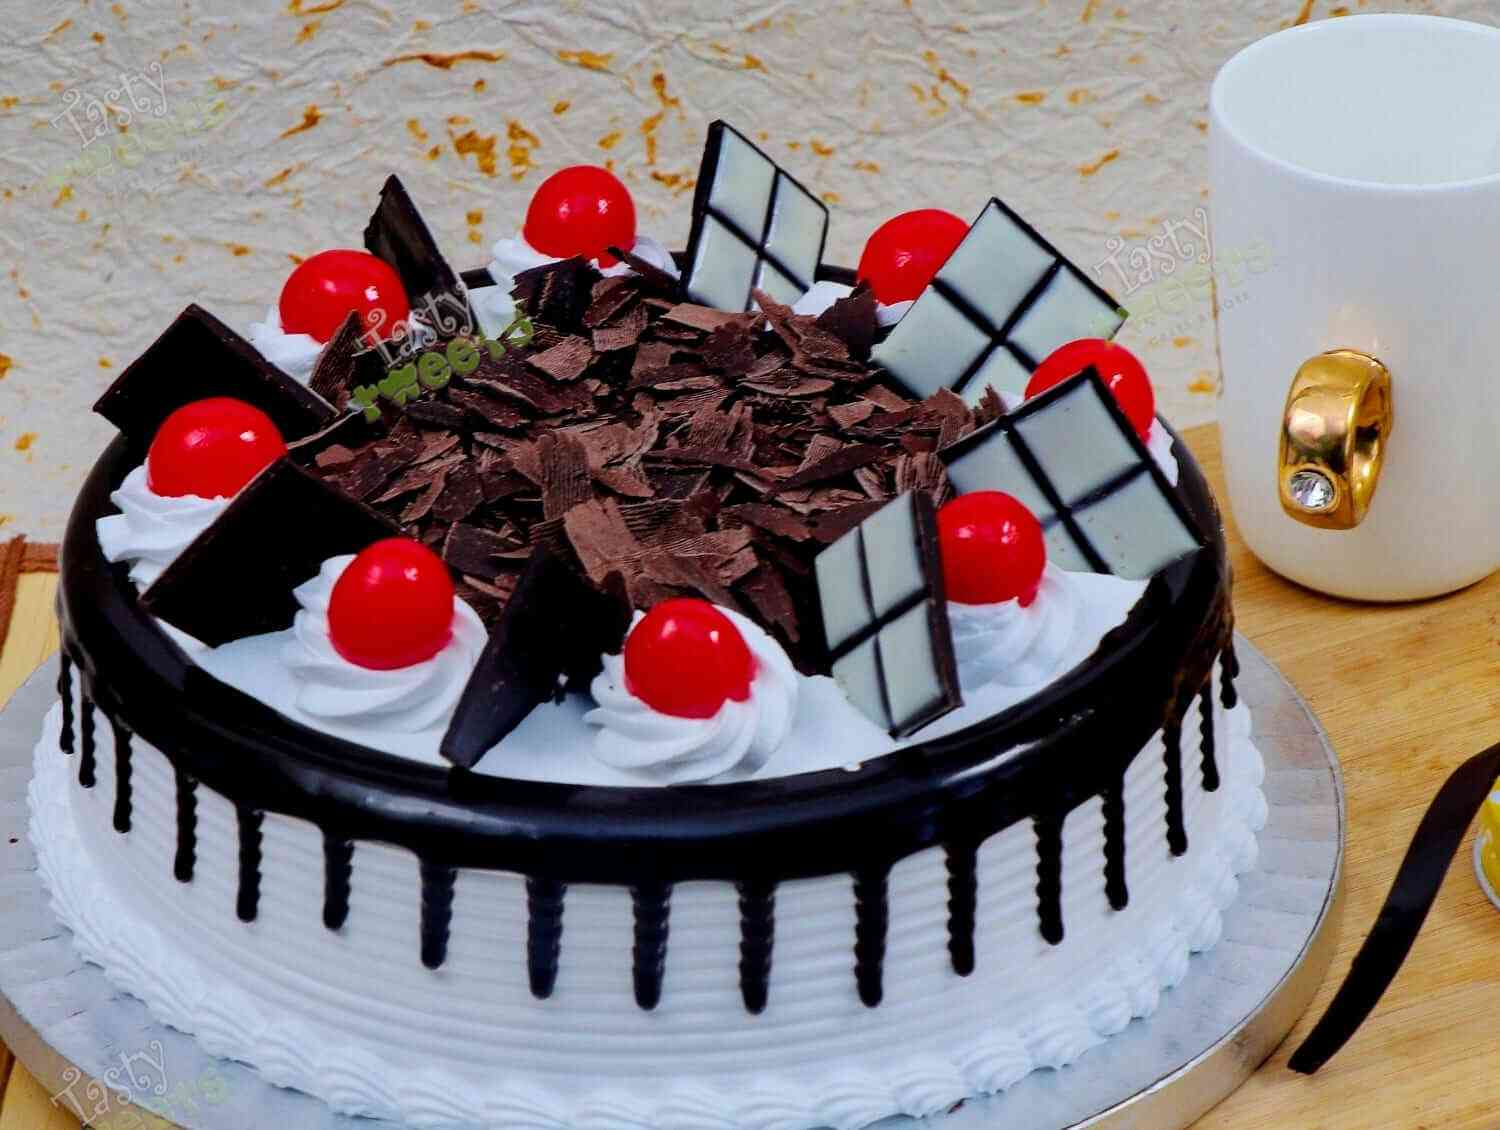 Wondrous Order Cakes Online In Gurgaon Cake Order In Gurgaon Funny Birthday Cards Online Inifodamsfinfo